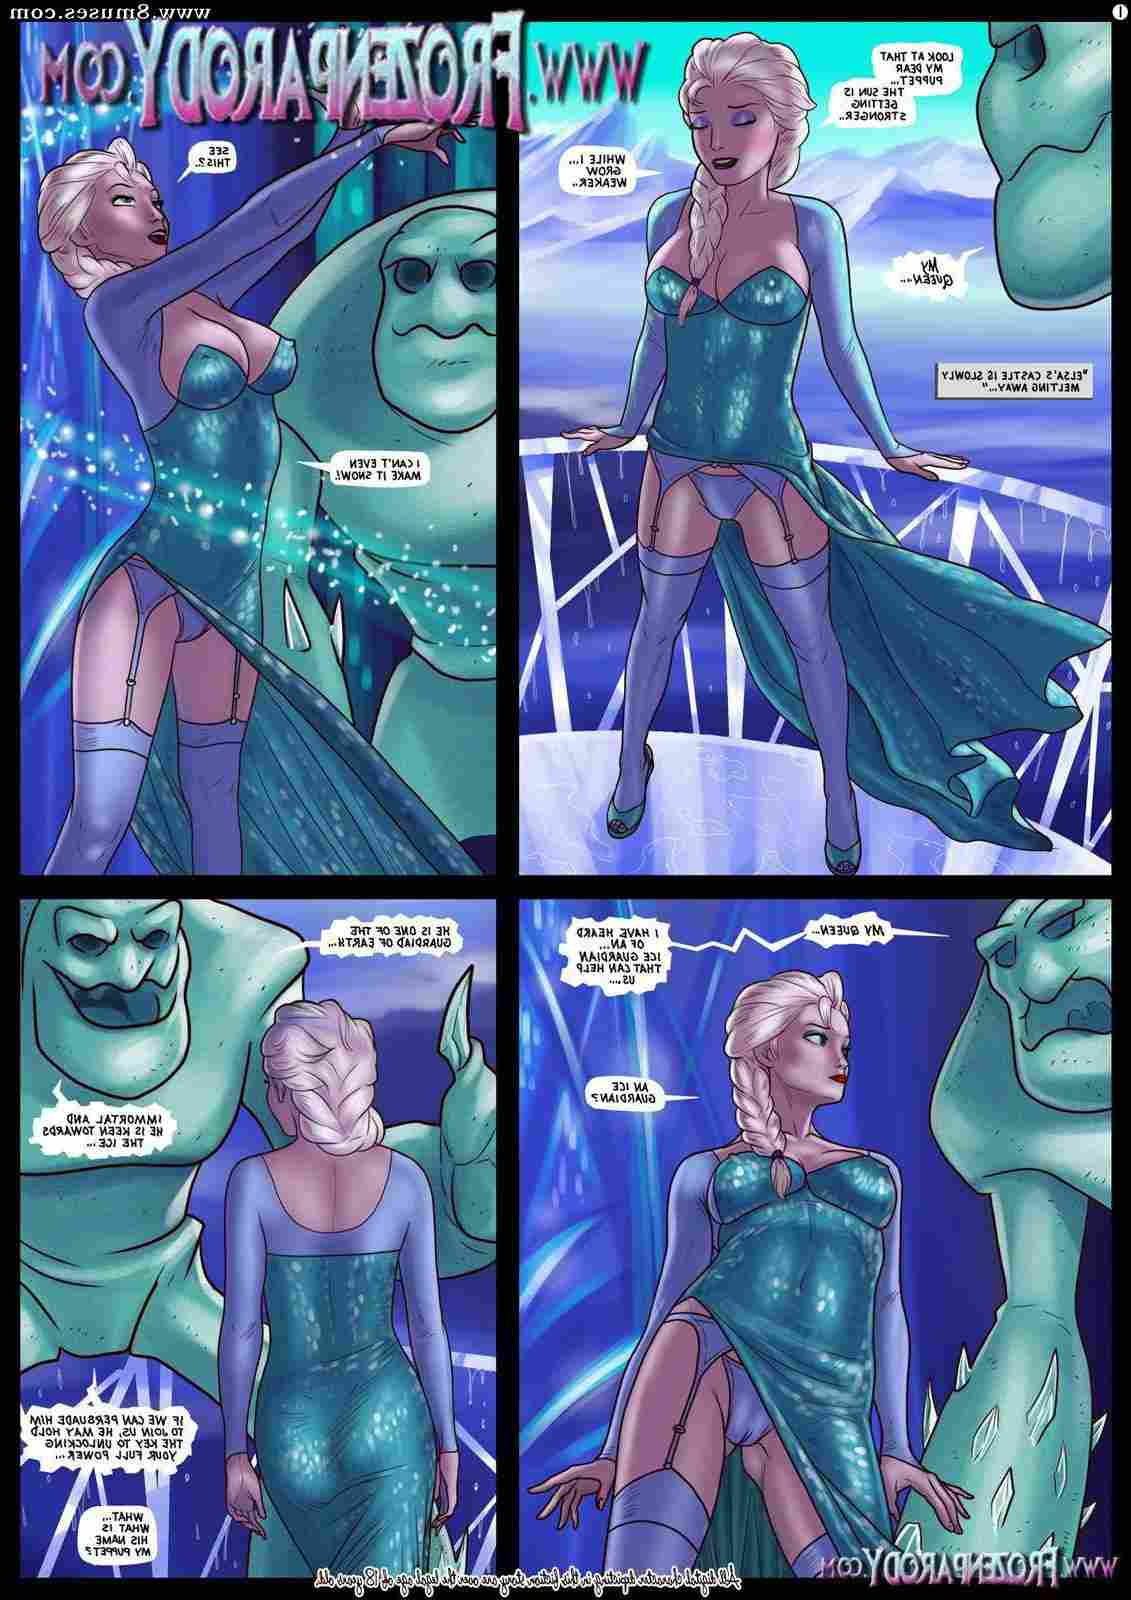 Frozen-Parody-Comics/Frozen-Parody-12-Elsa-Meet-Jack Frozen_Parody_12_-_Elsa_Meet_Jack__8muses_-_Sex_and_Porn_Comics.jpg